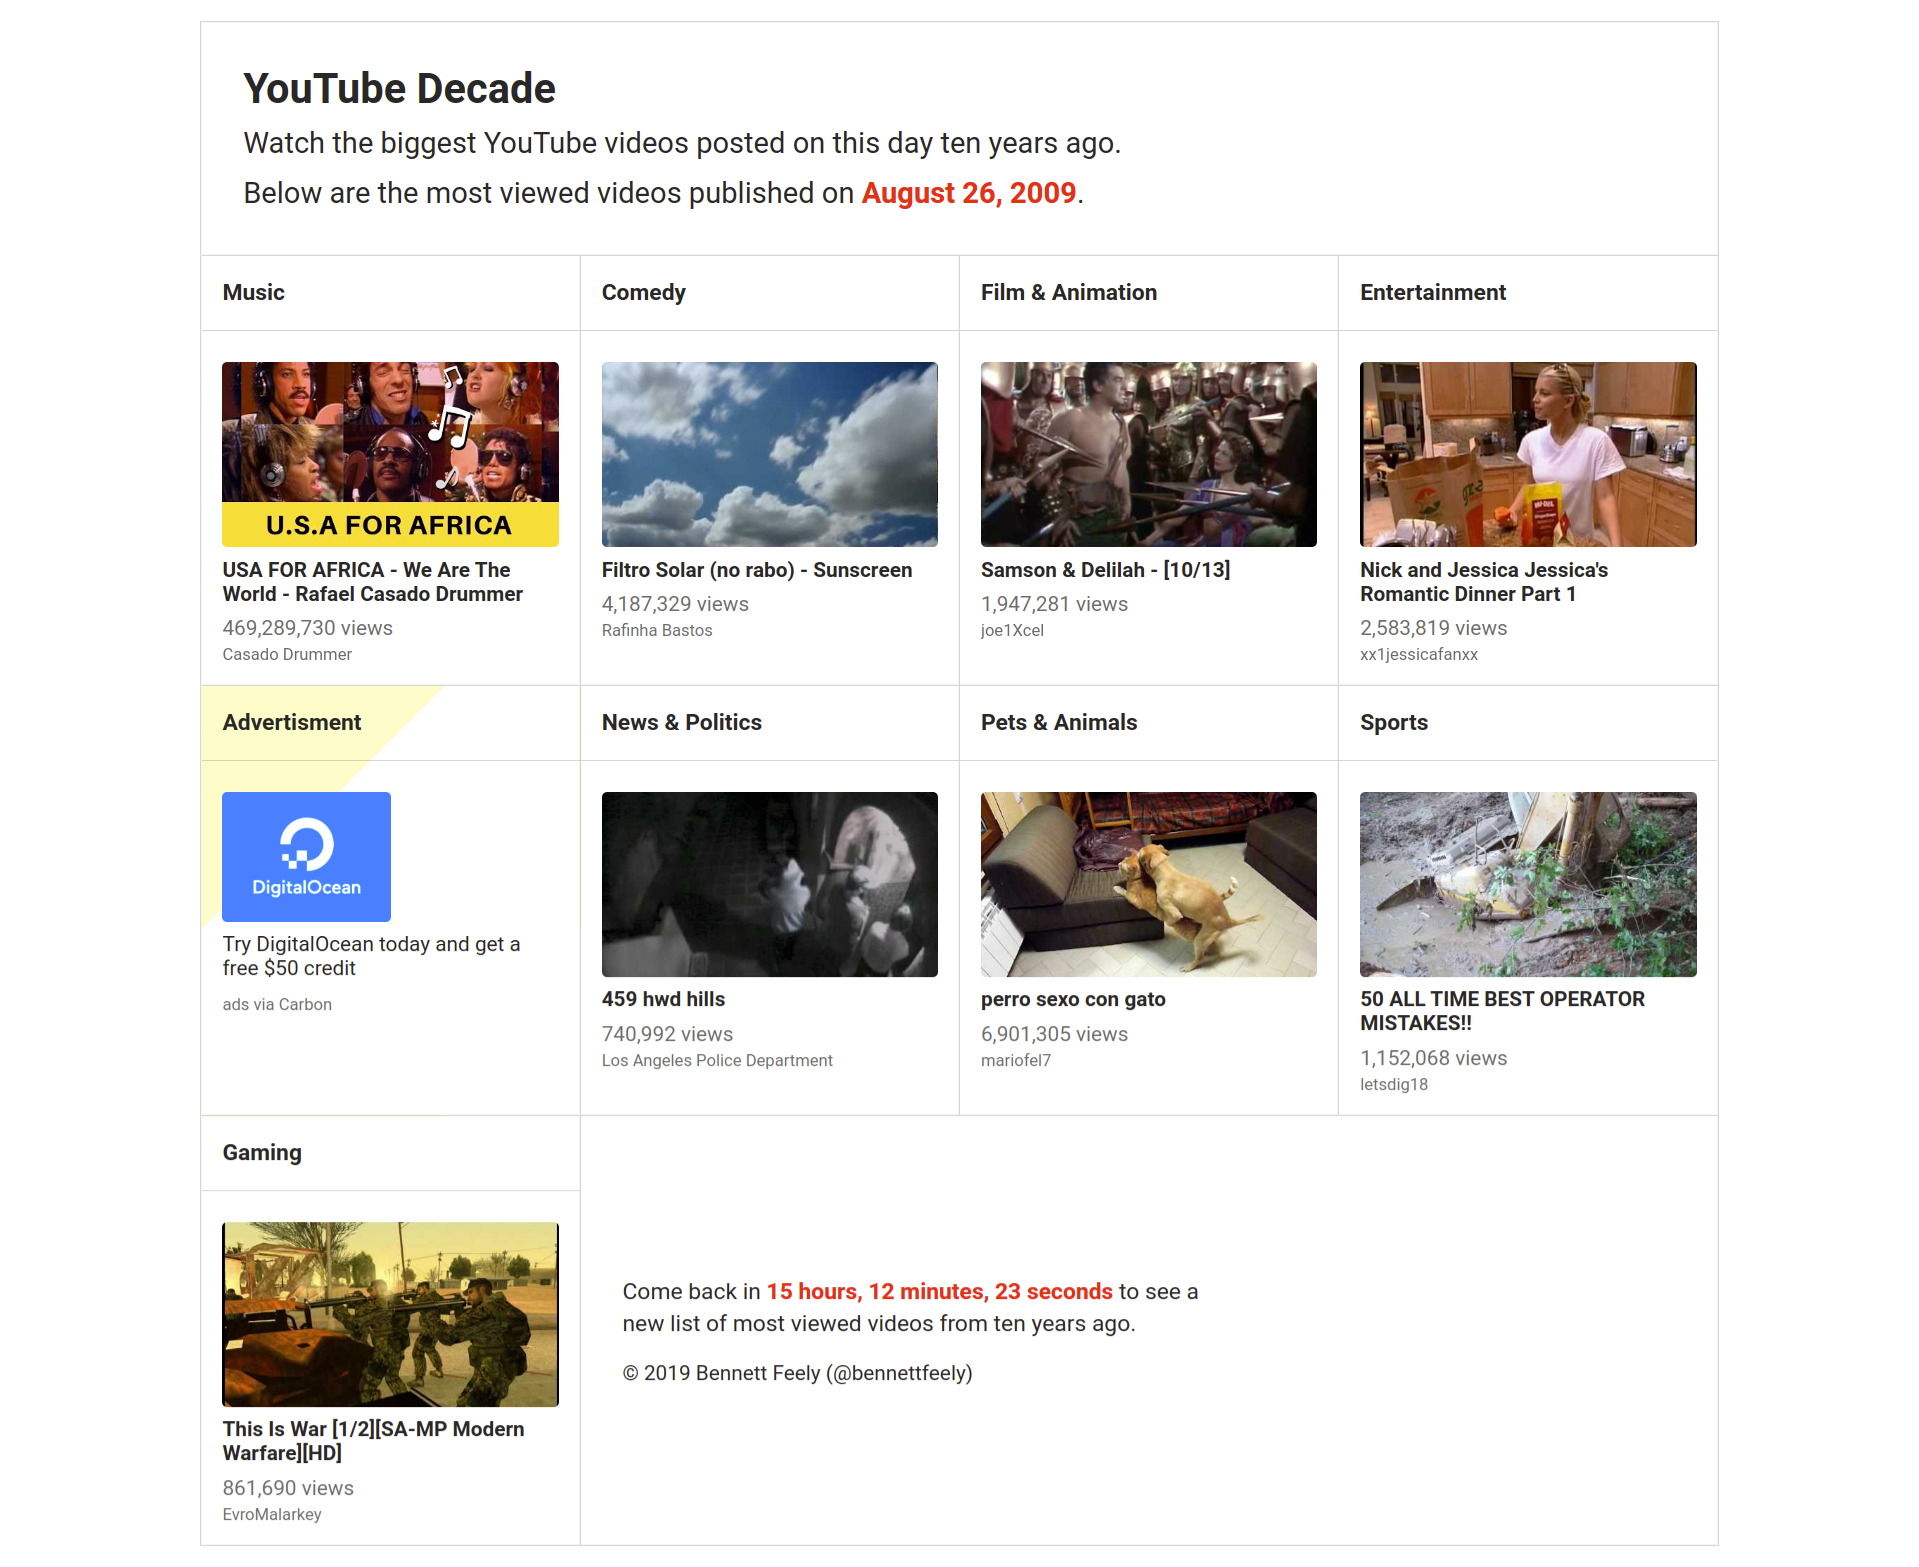 Throwback Thursday: YouTube Decade